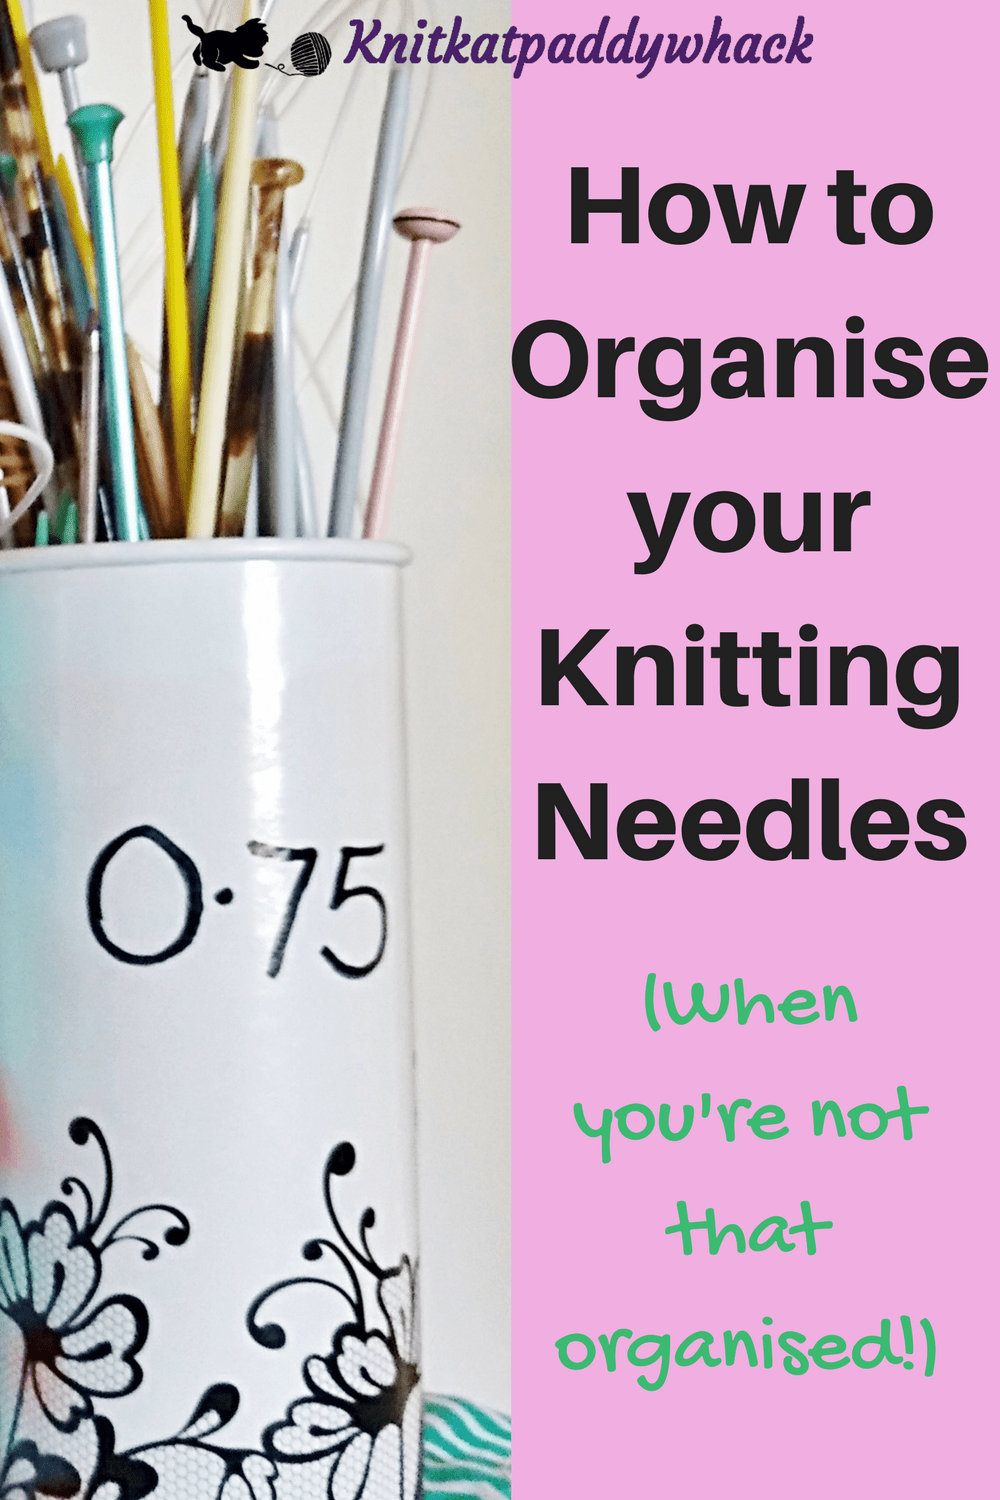 Captioned image How to Organise Knitting Needles